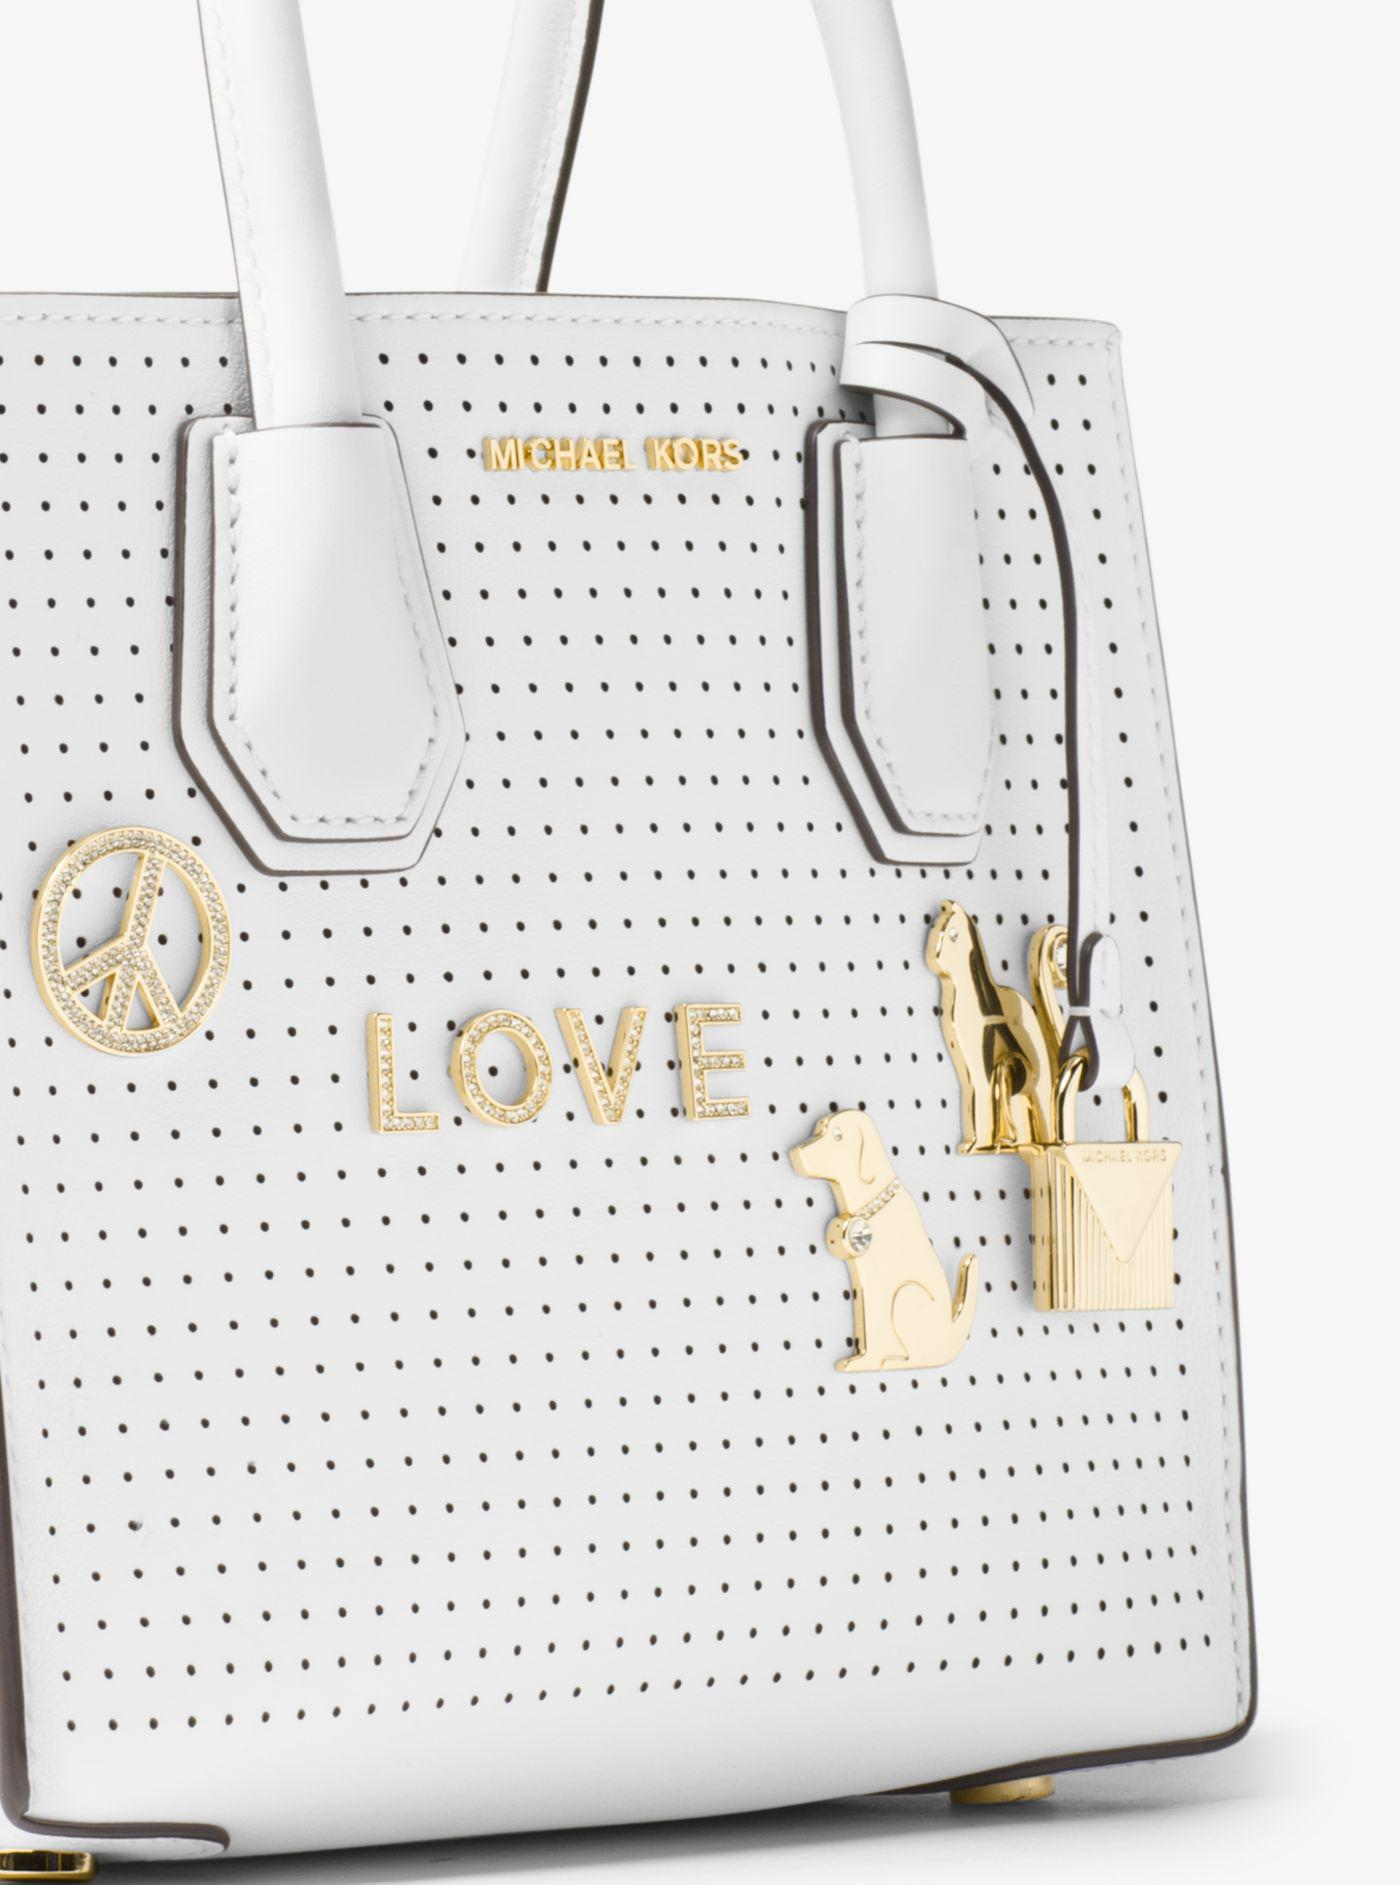 a170206ce135 Michael Kors Mercer Perforated Leather Crossbody Bag in White - Lyst